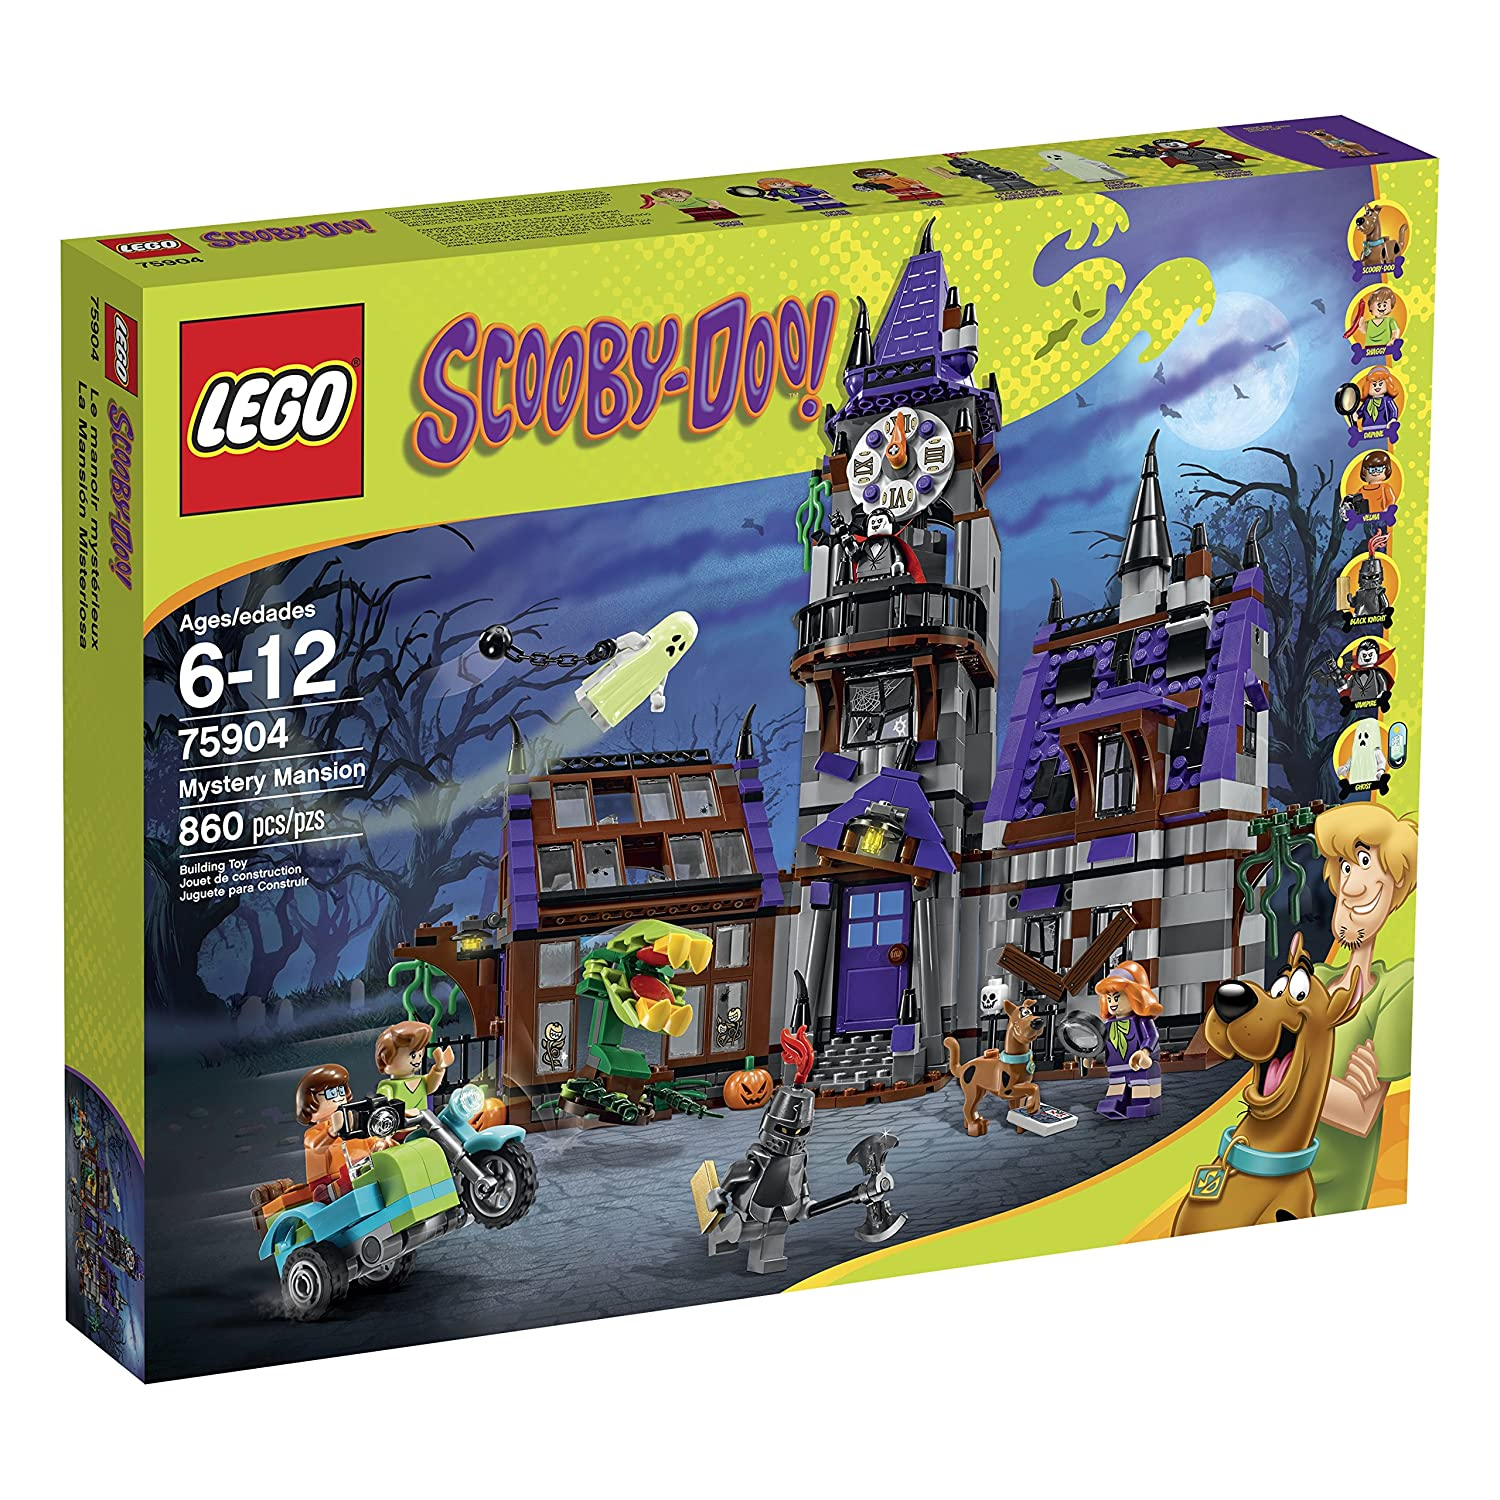 Top 5 Best LEGO Scooby Doo Sets Reviews in 2021 7